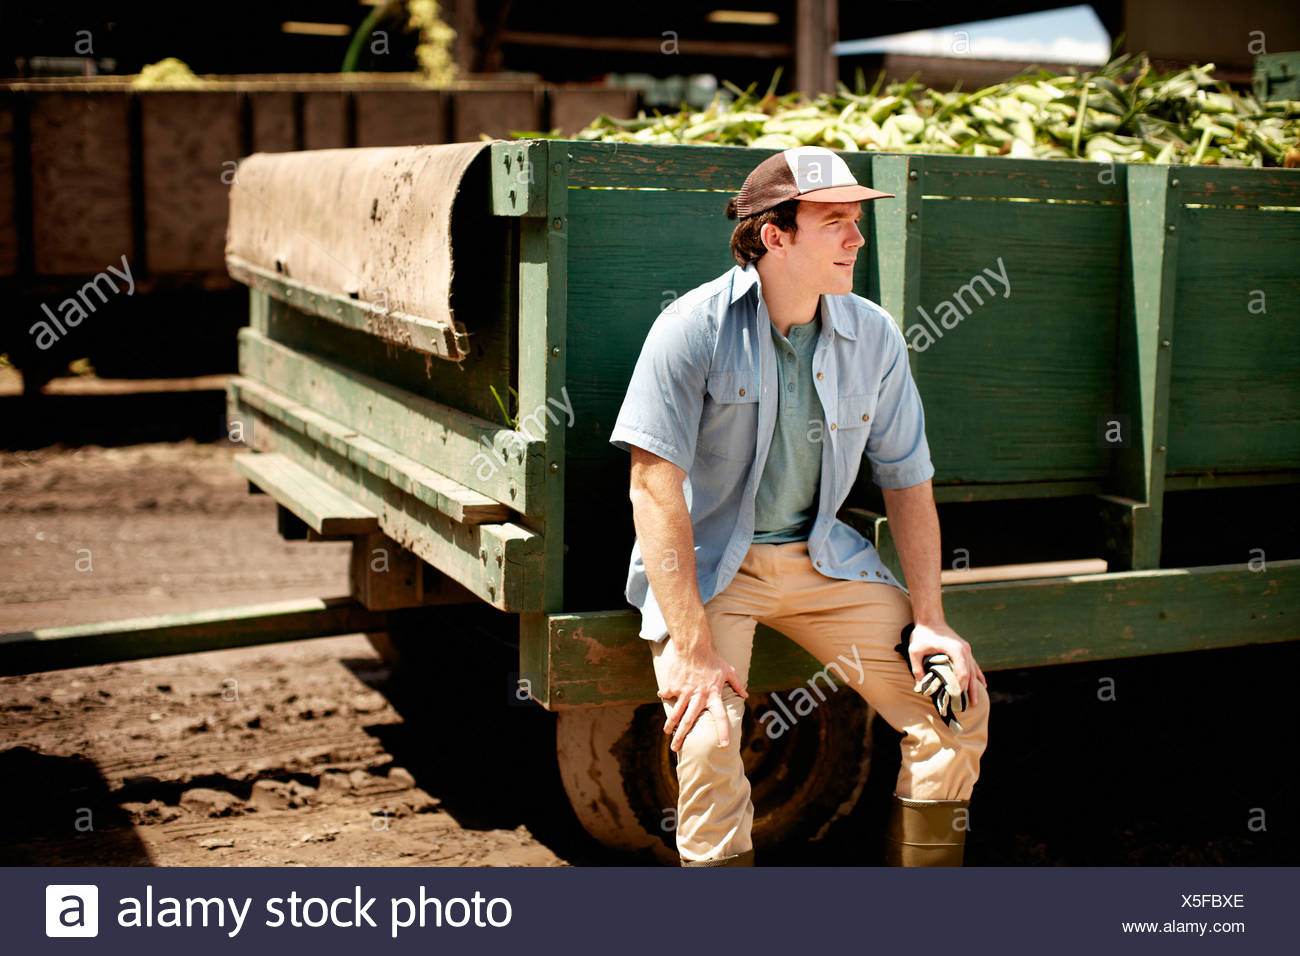 A trailer harvested corn cobs corn on cob. Organic food ready for distribution. Farmer sitting on trailer wheel resting. - Stock Image